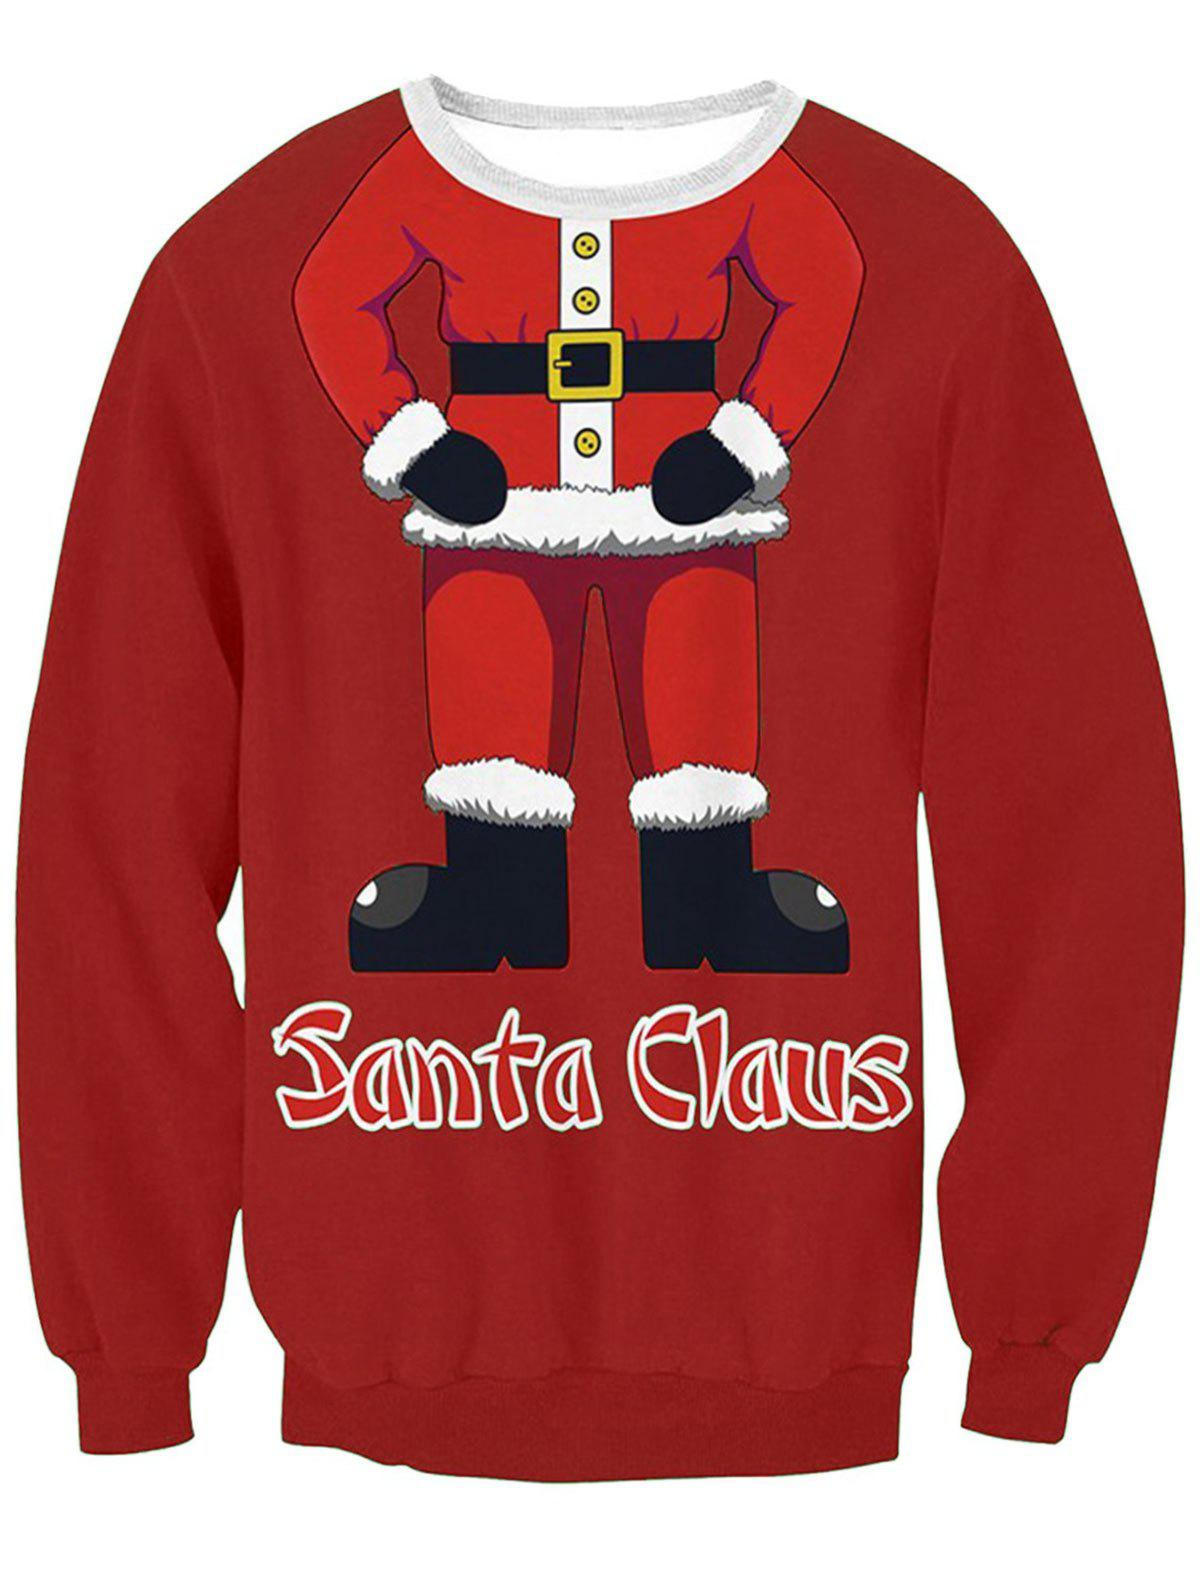 Shop Santa Claus Body Print Pullover Sweatshirt